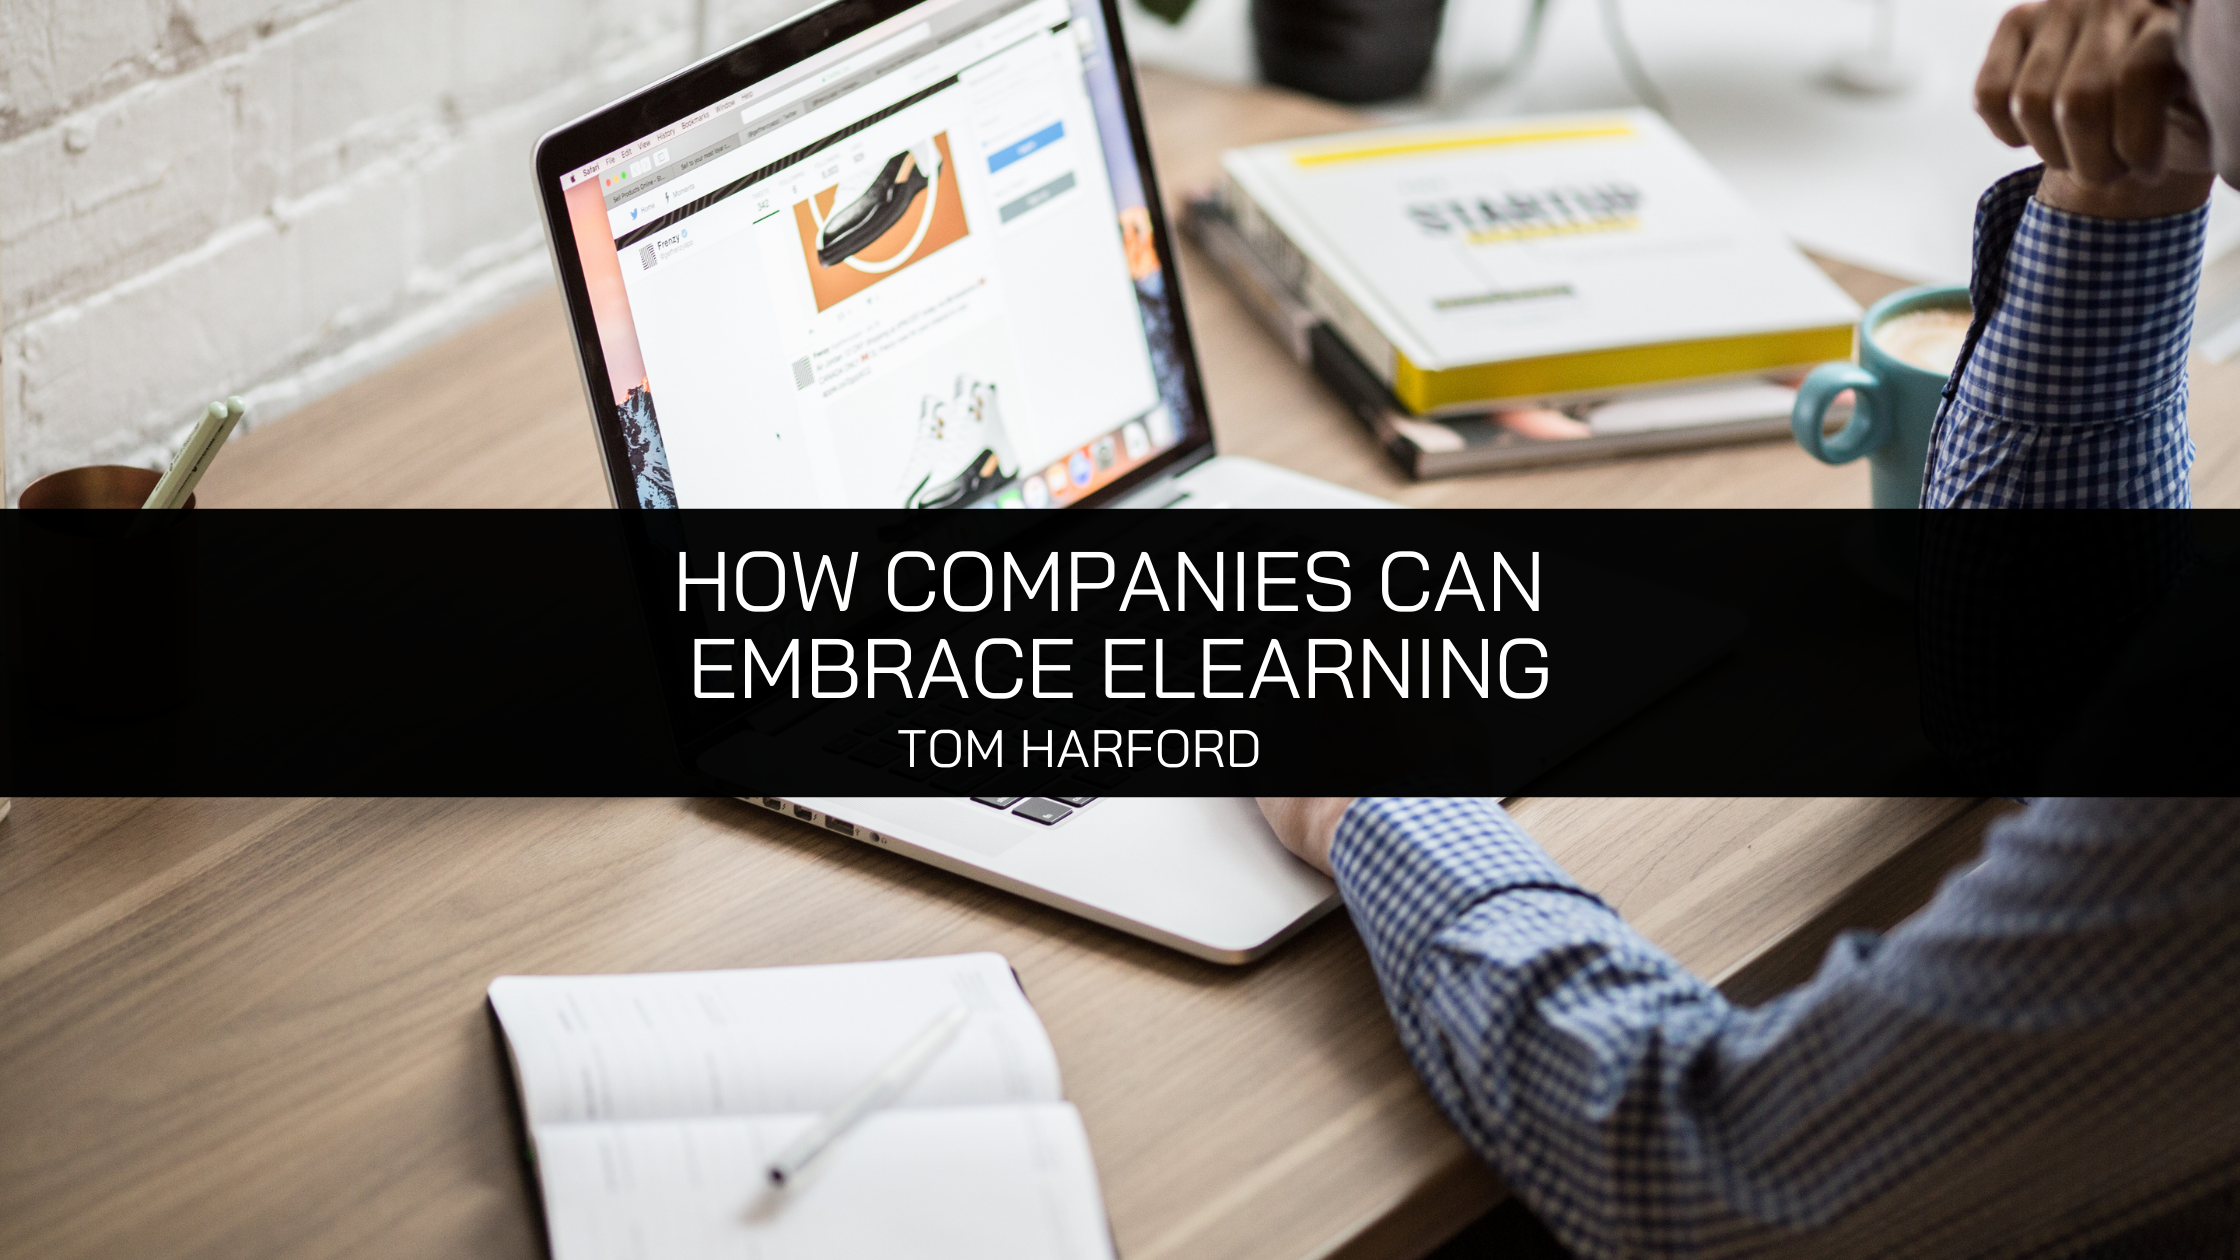 How Companies Can Embrace eLearning, Tom Harford Explains